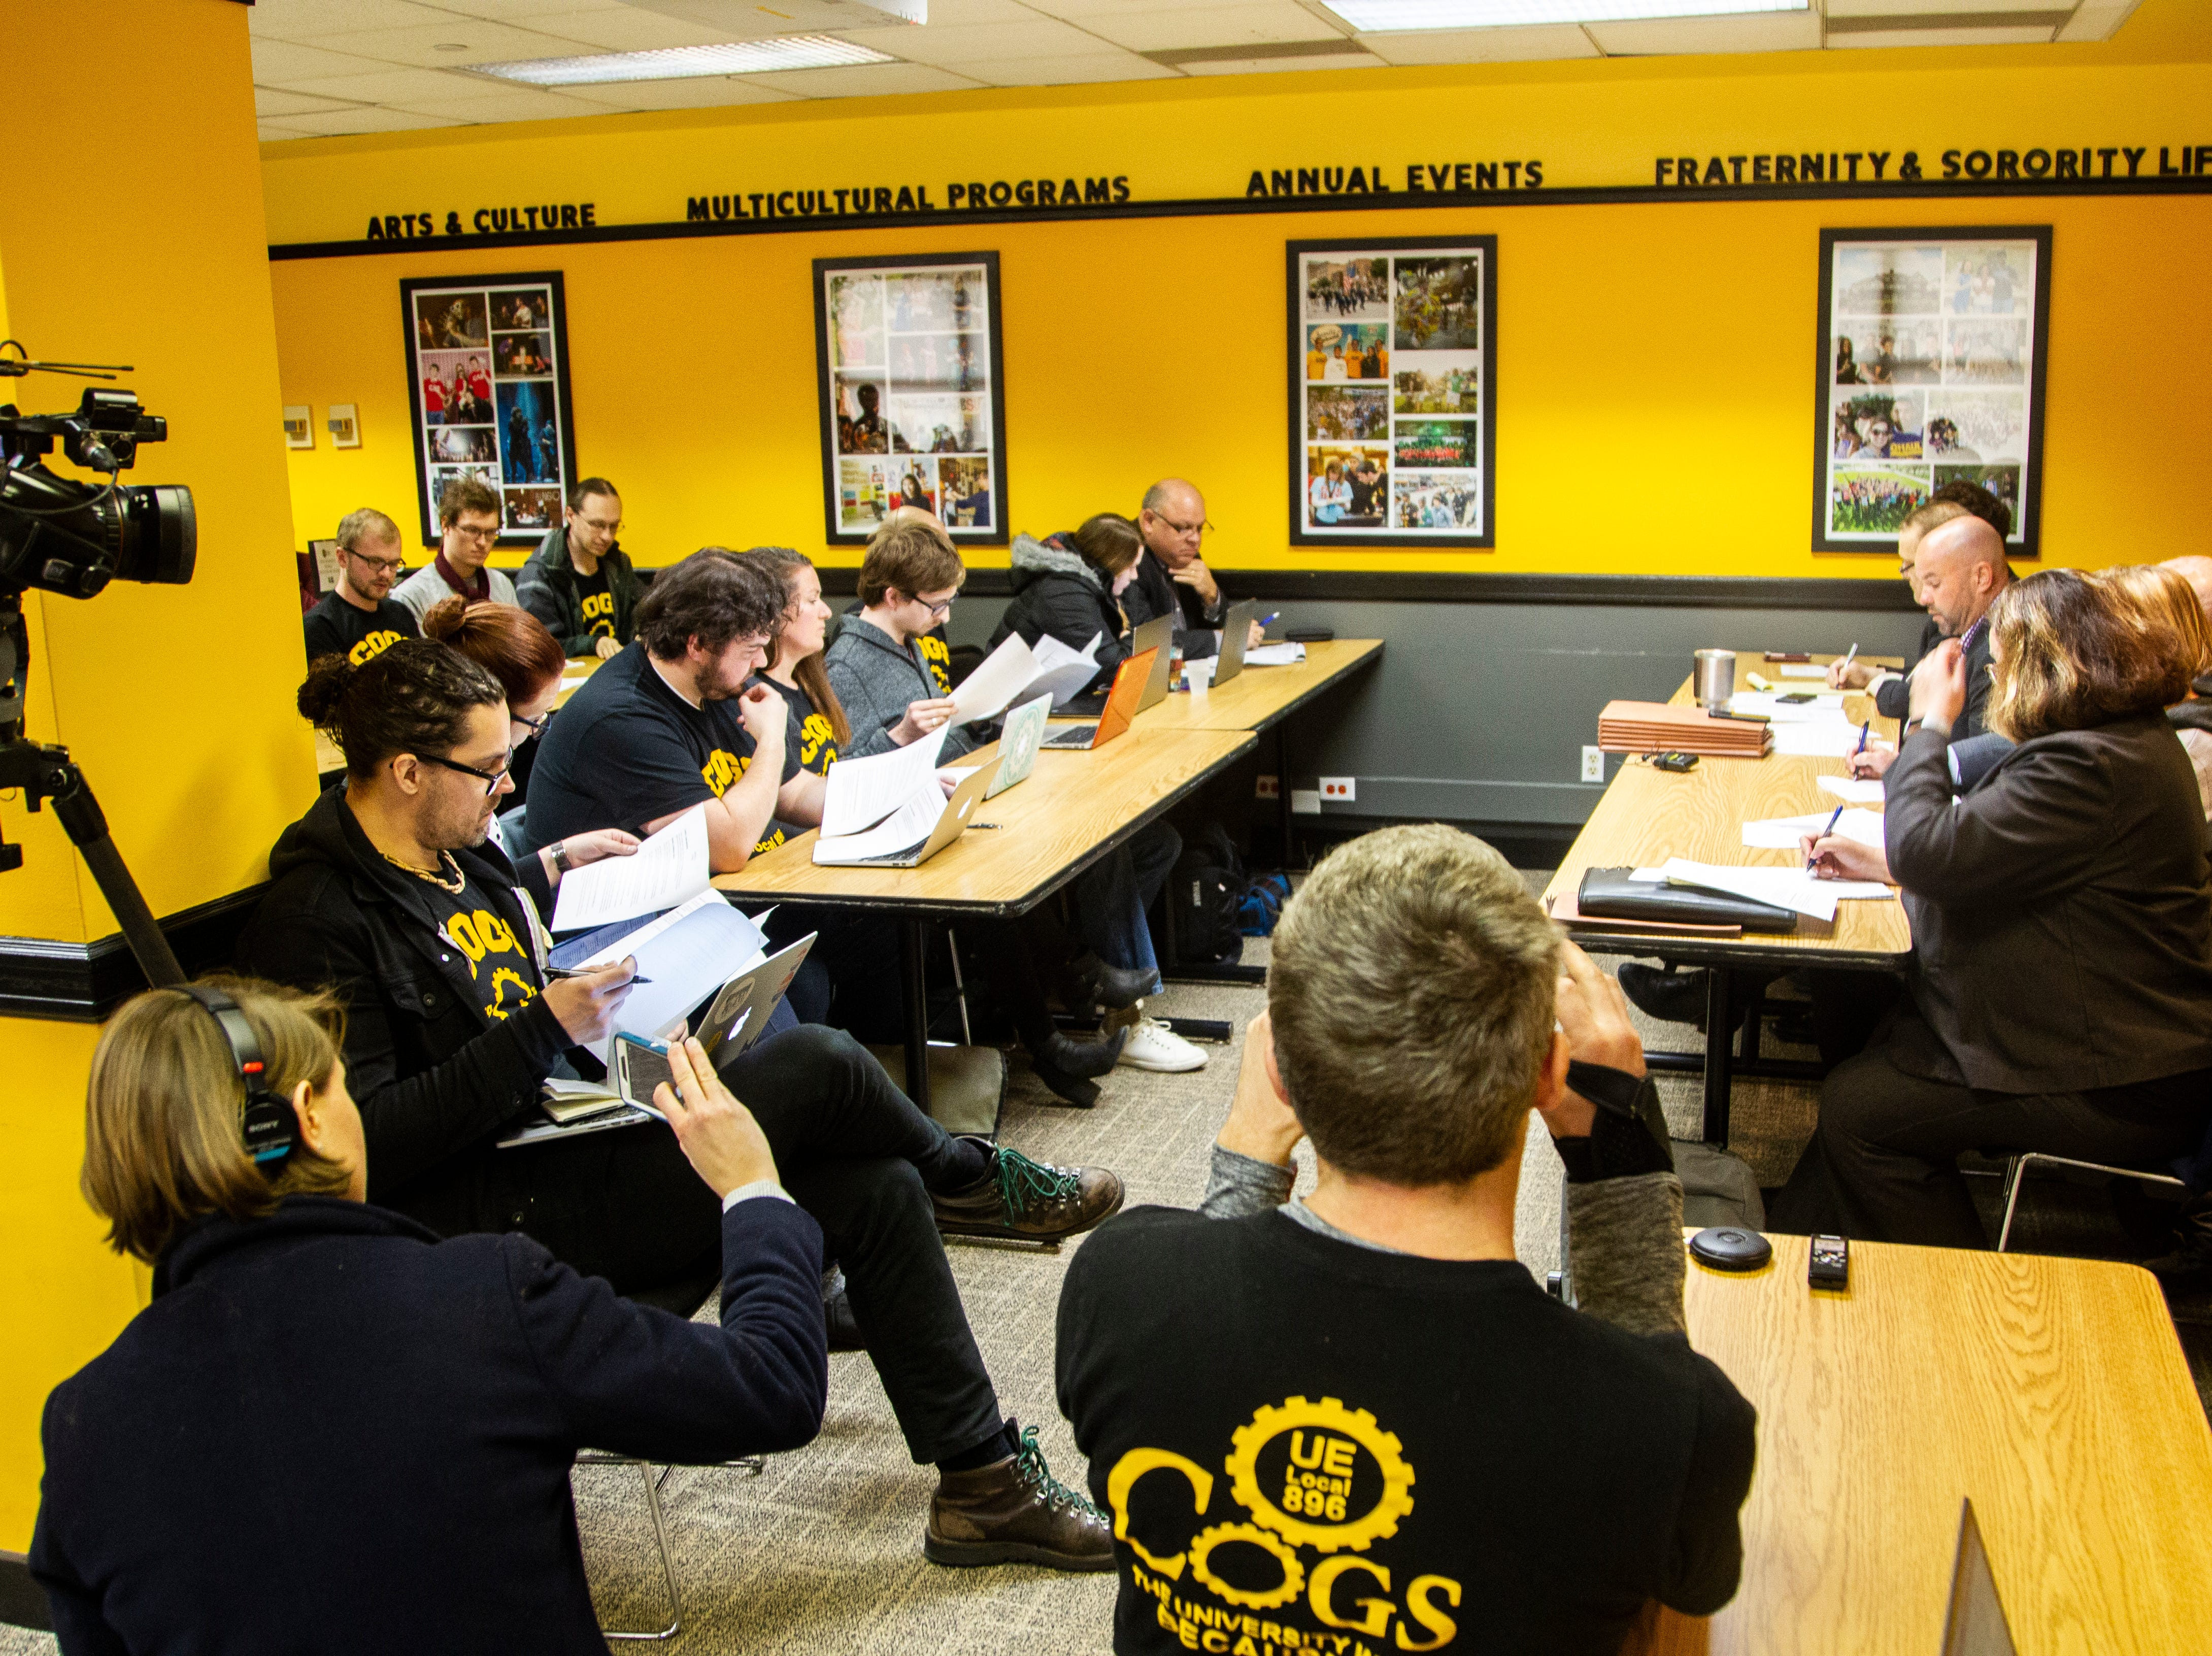 Campaign to Organize Graduate Students members look through a one page document from Regents lawyer Mike Galloway during a contract proposal from the Iowa Board of Regents on Wednesday, Dec. 12, 2018, at the Iowa Memorial Union in Iowa City.